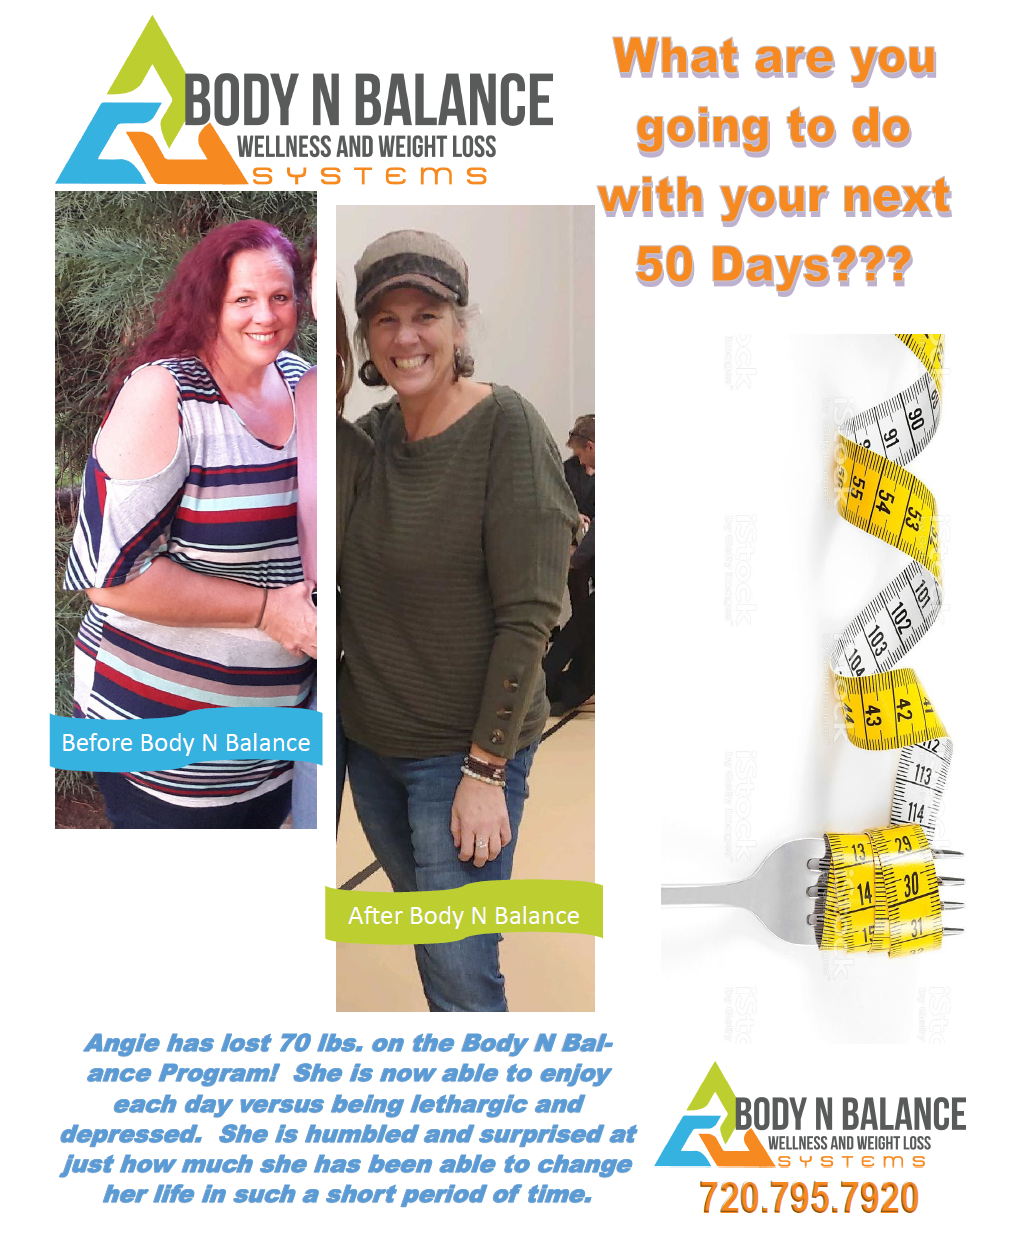 See How Angie's story of losing 70 pounds is JUST THE BEGINNING!